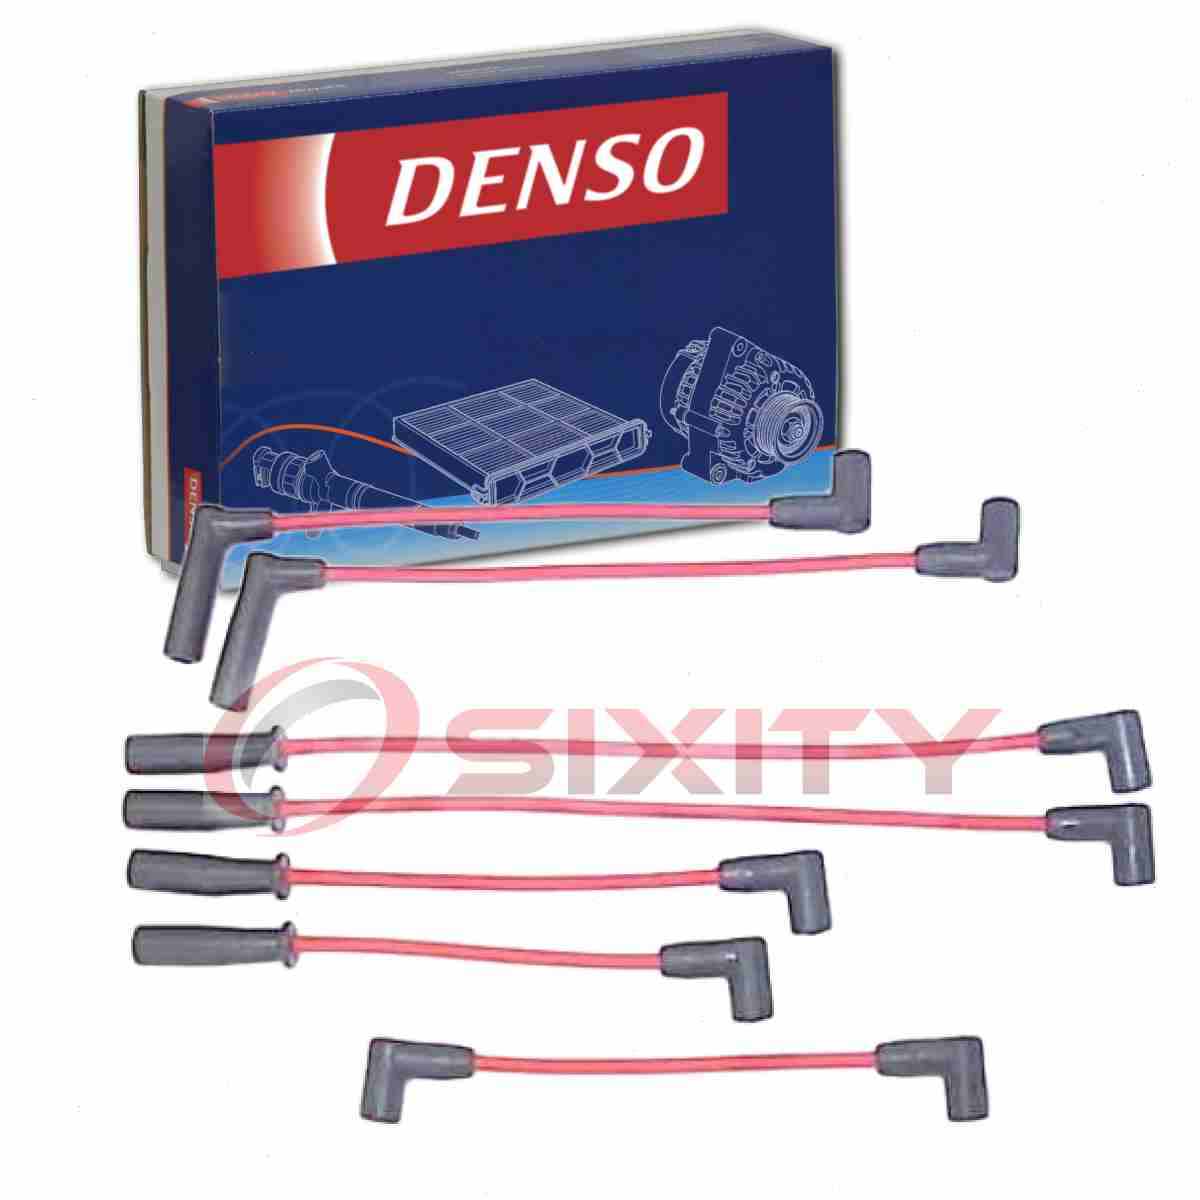 Details about Denso Spark Plug Ignition Wires Set for Jeep Grand Cherokee on ford super duty spark plugs, lexus es300 spark plugs, plymouth voyager spark plugs, dodge journey spark plugs, oldsmobile bravada spark plugs, toyota sequoia spark plugs, gmc acadia spark plugs, volvo 740 spark plugs, dodge magnum spark plugs, chevrolet colorado spark plugs, kia sephia spark plugs, volvo 240 spark plugs, acura mdx spark plugs, fiat 500 spark plugs, dodge intrepid spark plugs, scion xb spark plugs, ford f250 spark plugs, volvo s70 spark plugs, volvo xc70 spark plugs, pontiac grand am spark plugs,